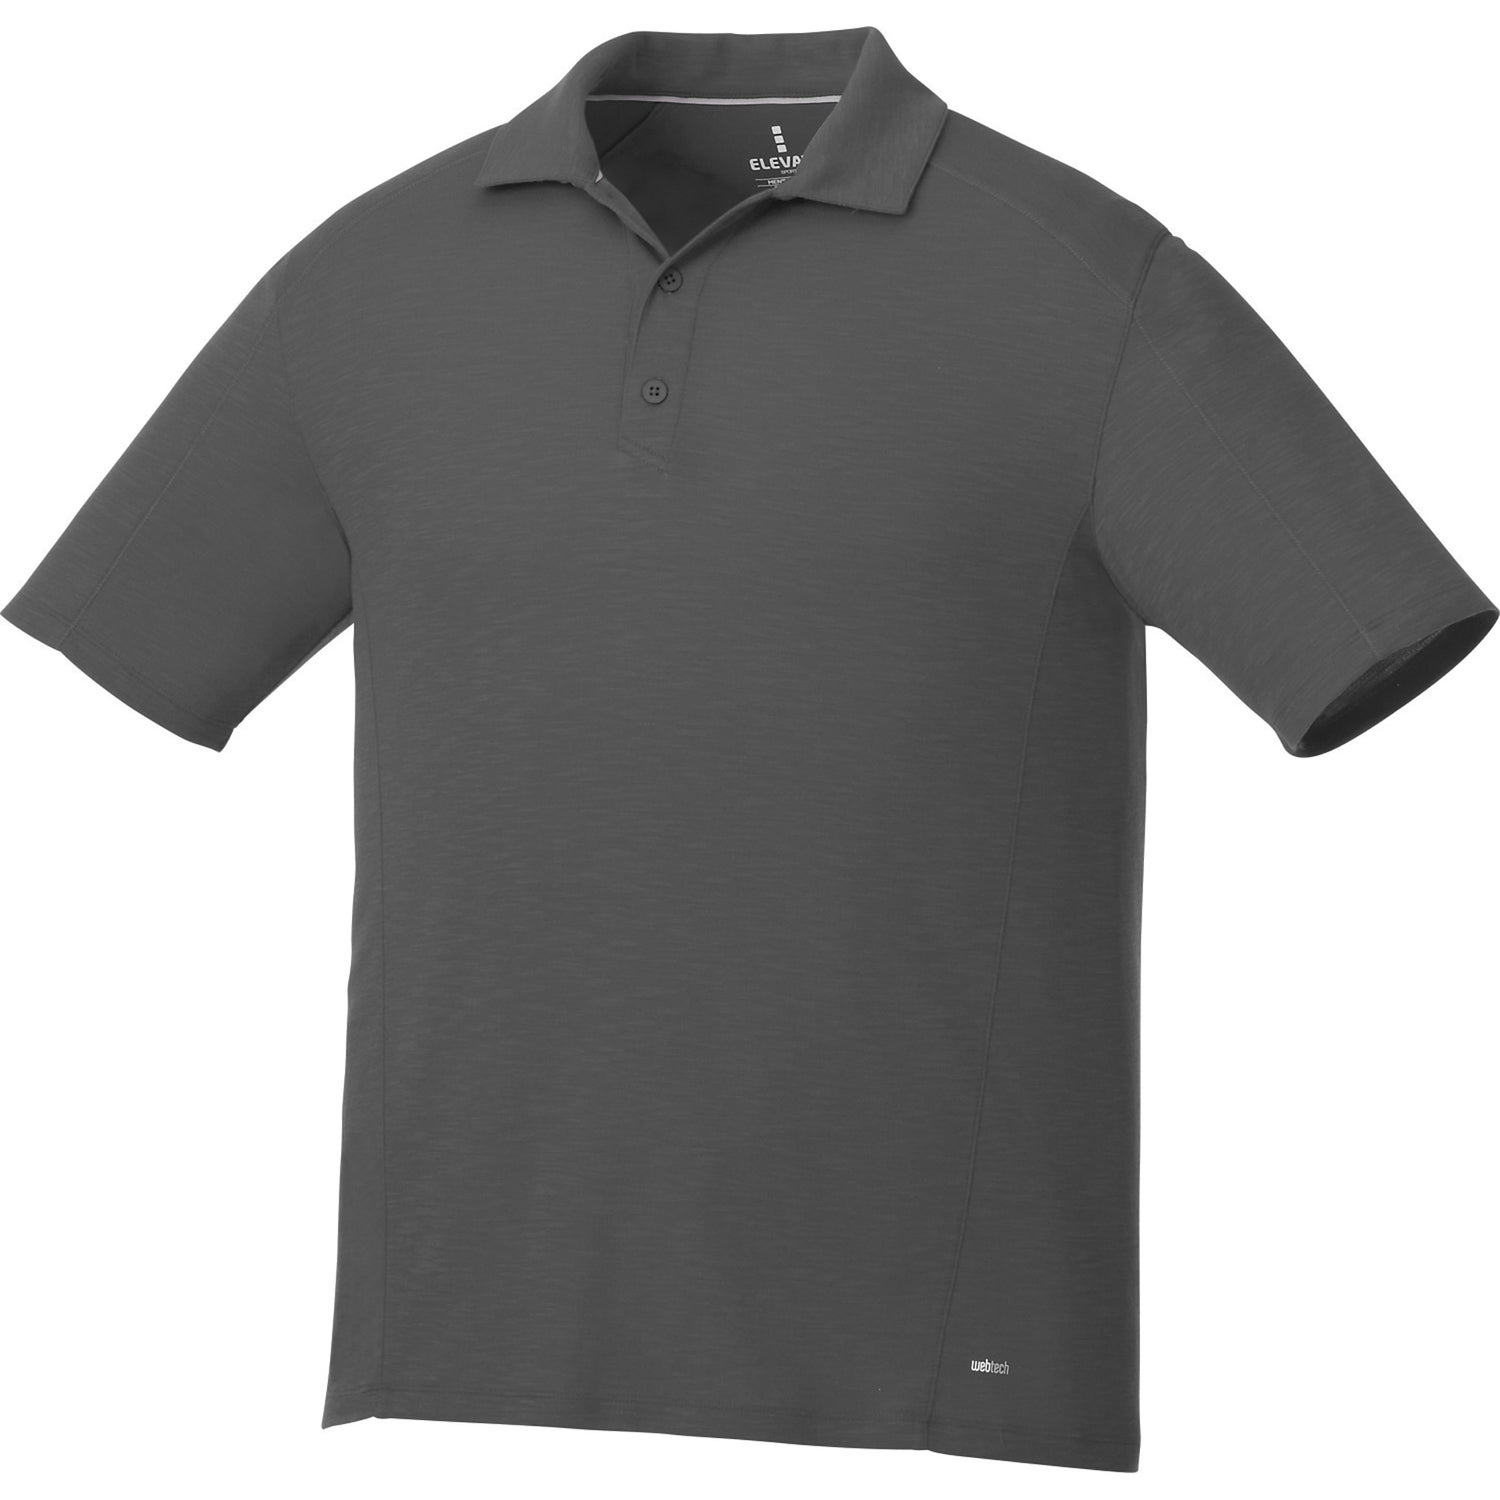 Promotional Mens Jepson Short Sleeve Polo Shirt By Trimarks With